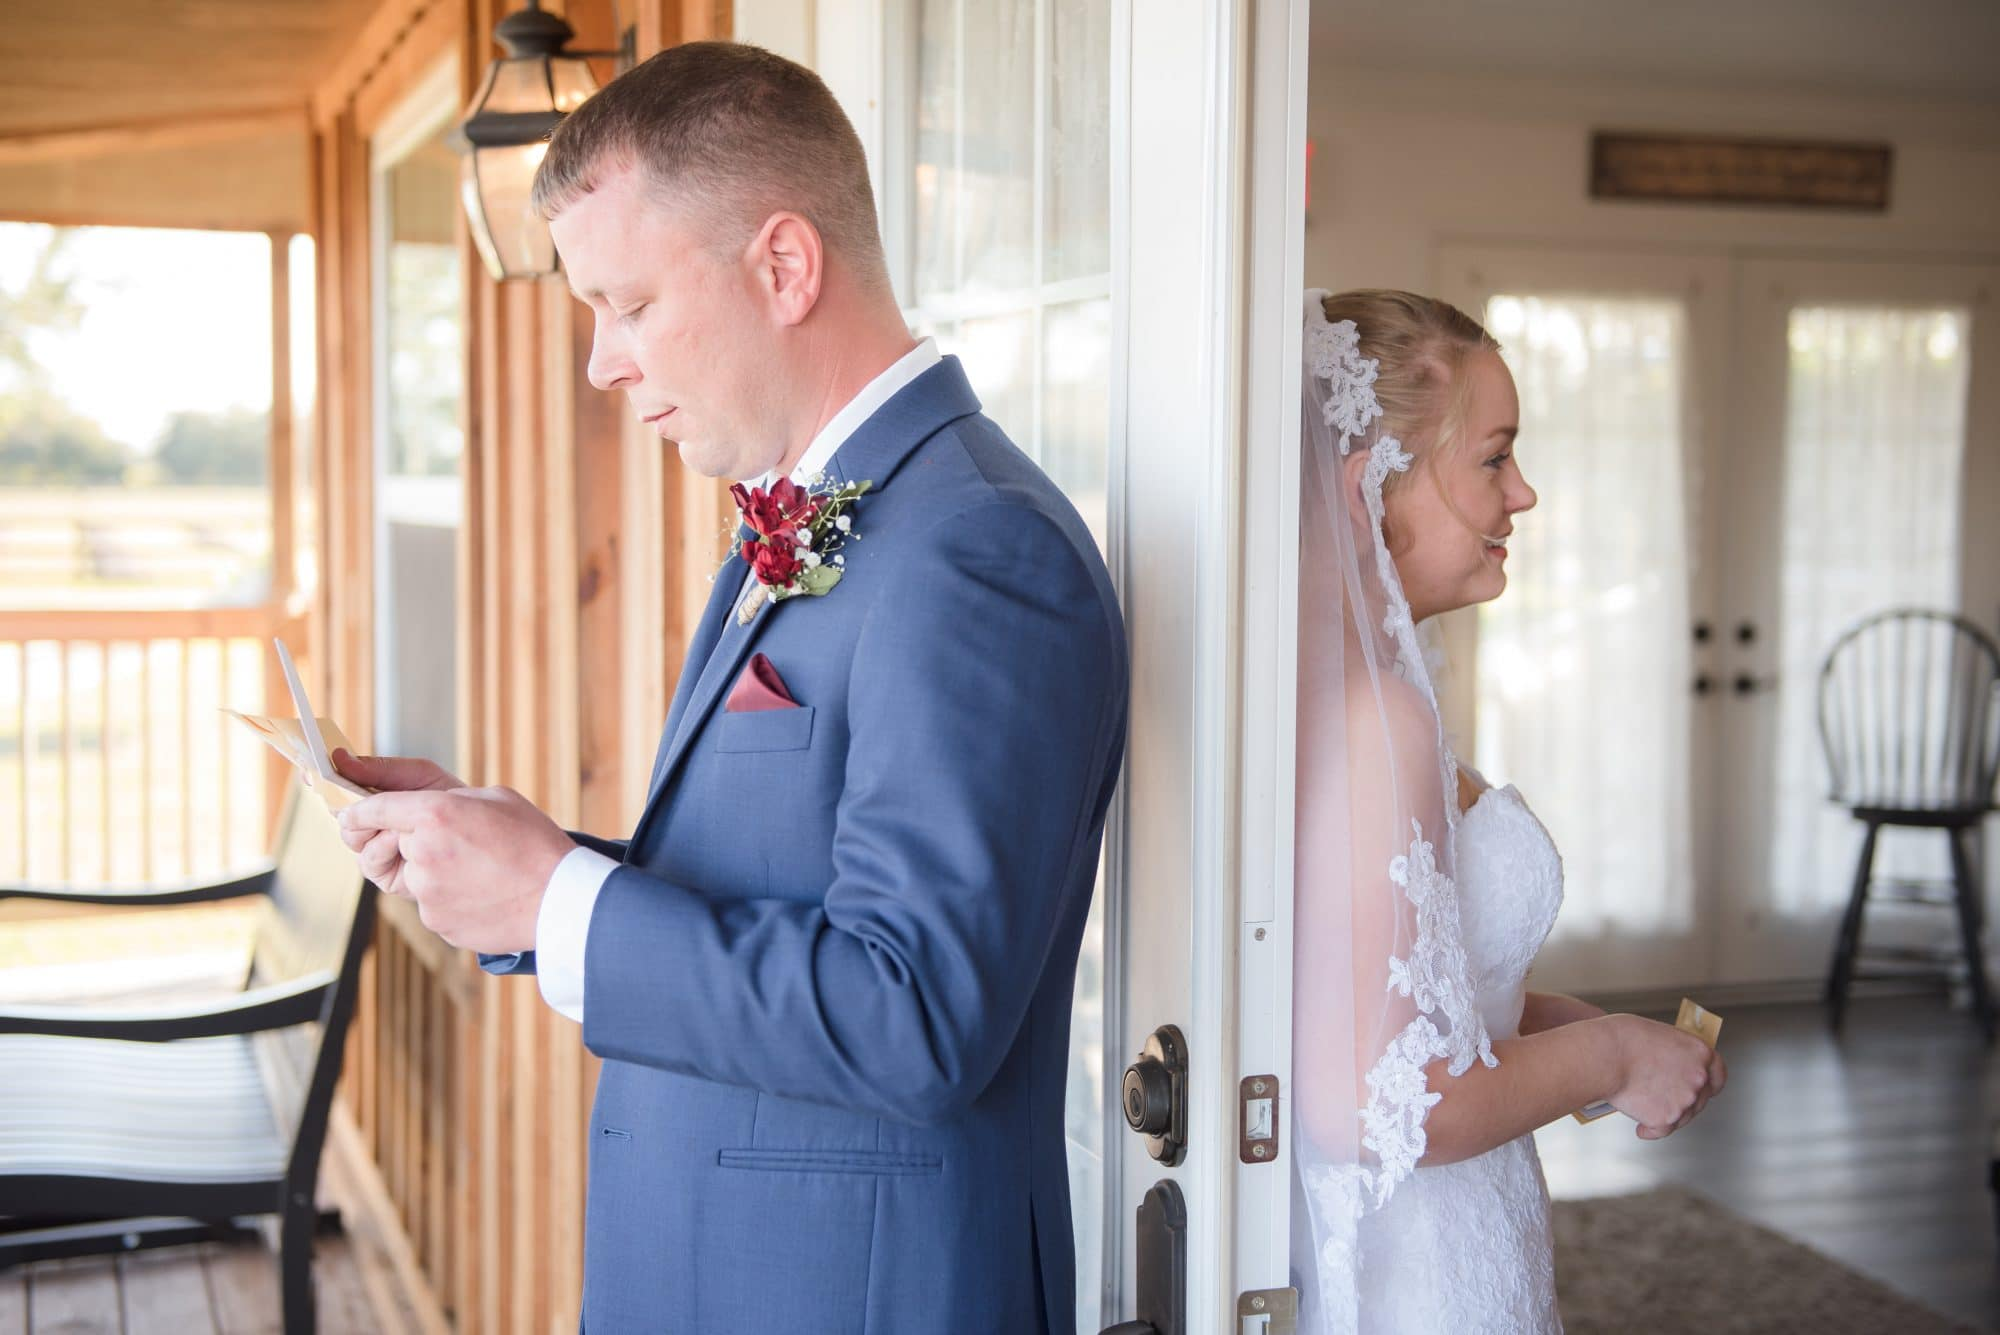 Brittany and Todd reading letters on opposite sides of door.